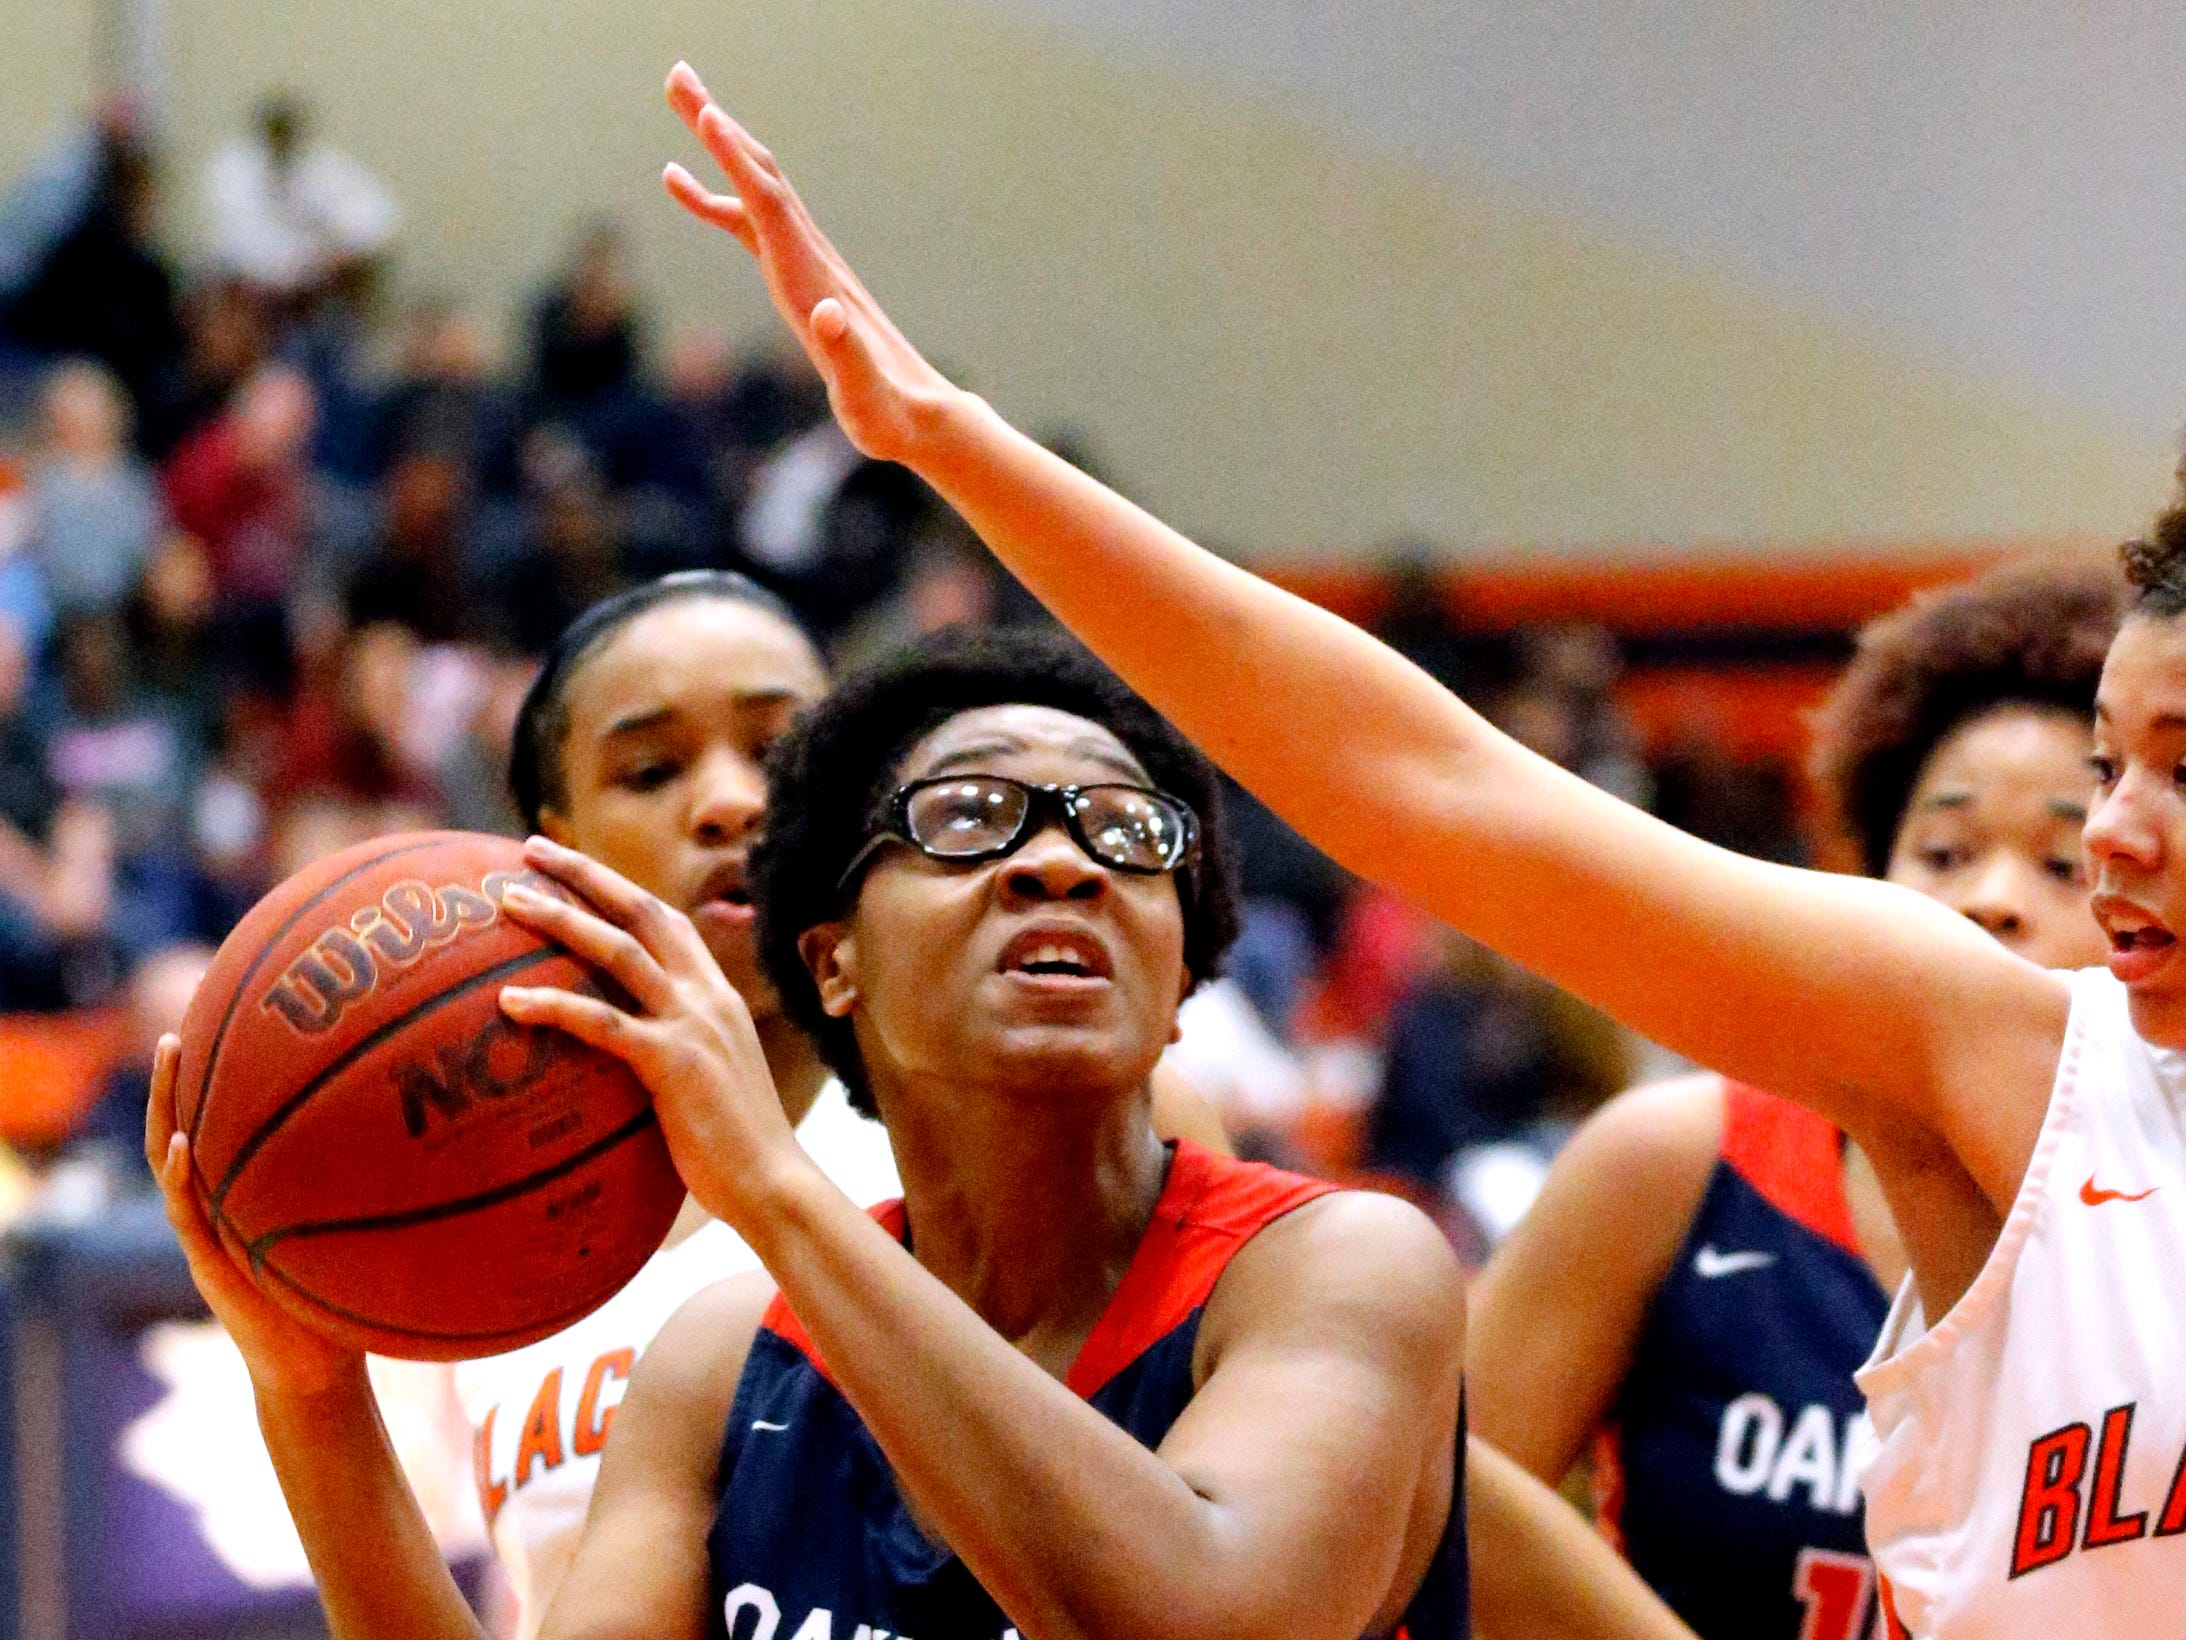 Oakland's Nicole Egeruoh (42) goes up for a shot during the game against Blackman on Friday, Feb. 8, 2019.